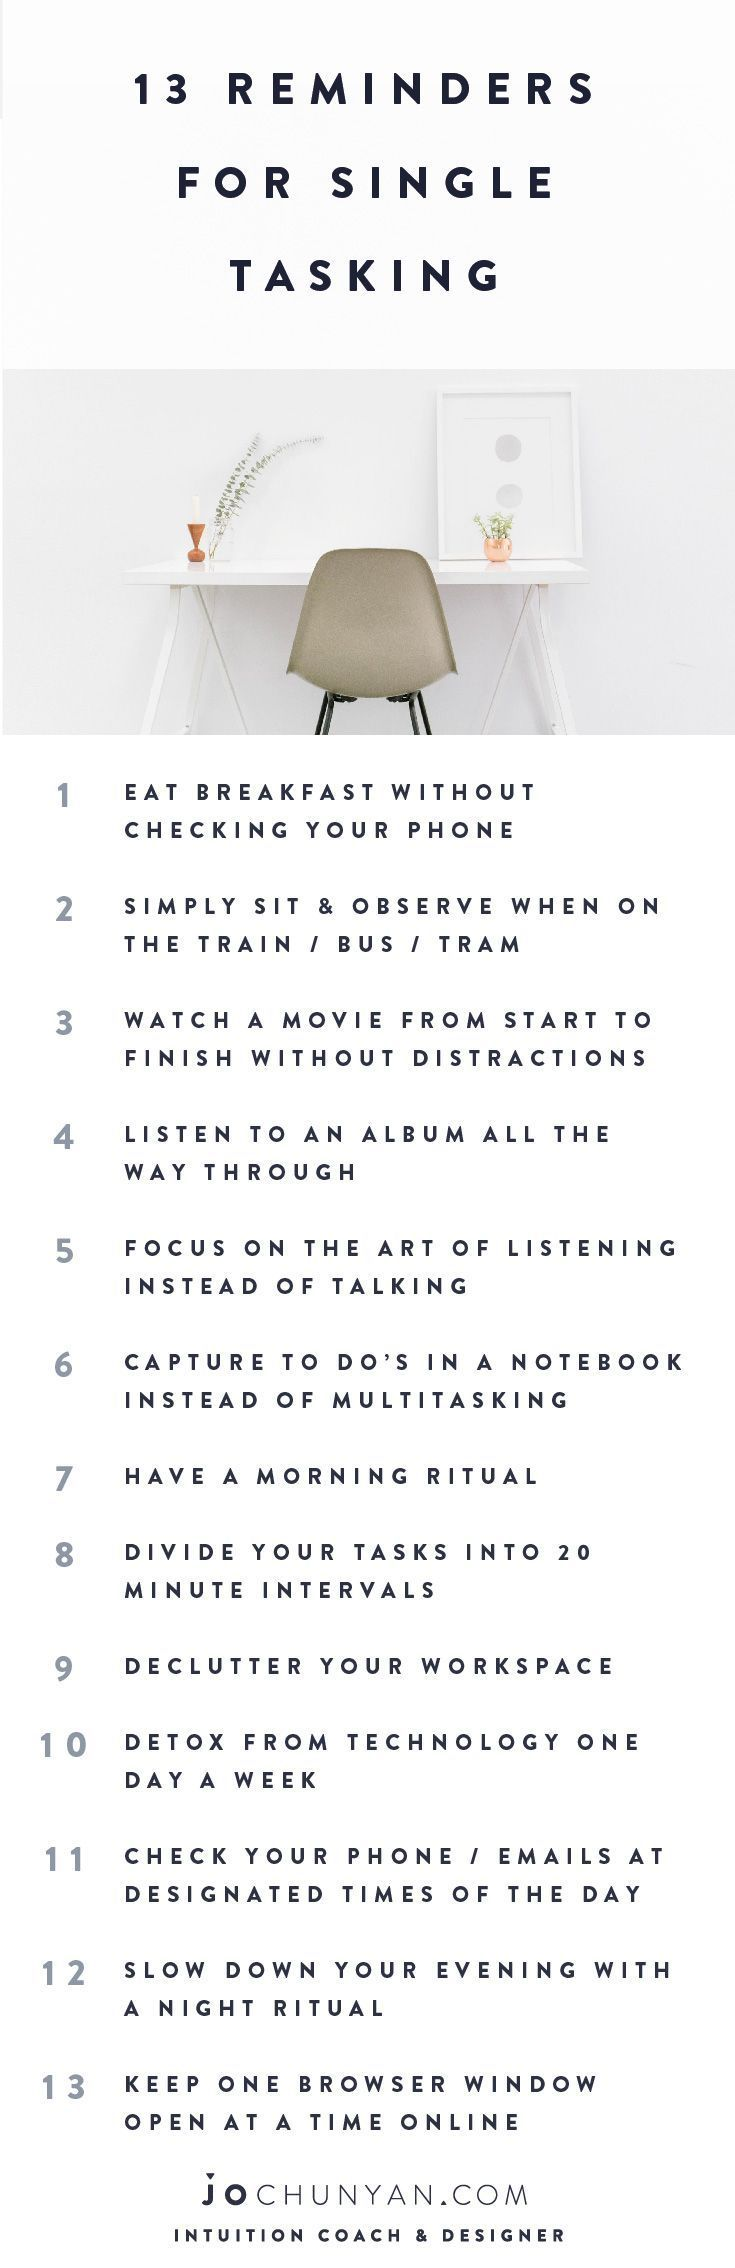 MULTI-TASKING is out - FOCUS + MINDFULNESS is in. Here are some reminders to help you to learn to single task + focus again. | Lifestyle Design | Personal Growth